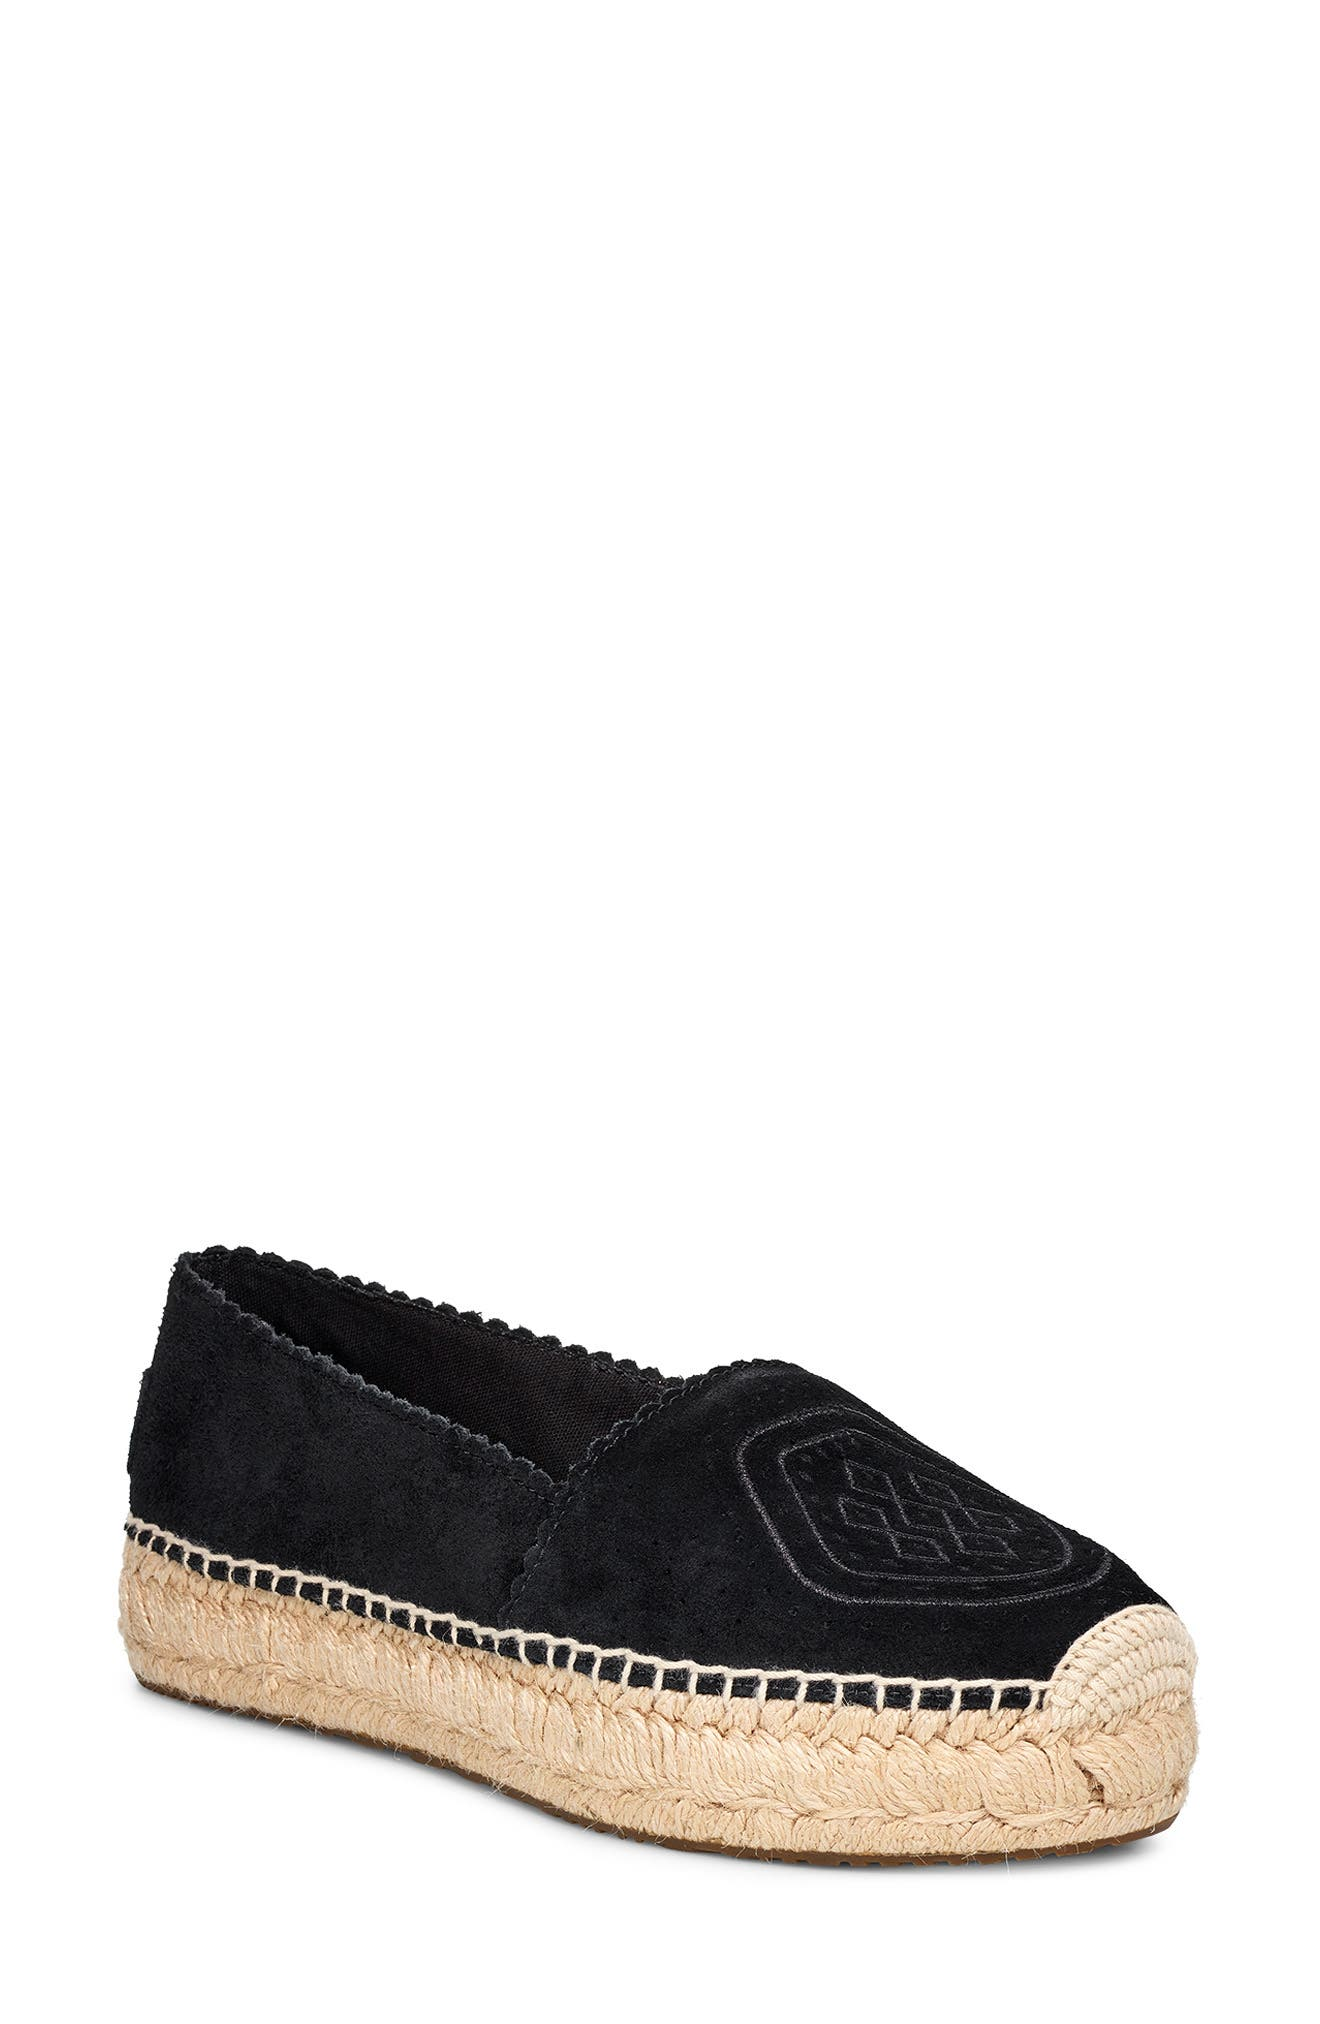 UGG<SUP>®</SUP>, Heidi Perforated Espadrille, Main thumbnail 1, color, BLACK SUEDE